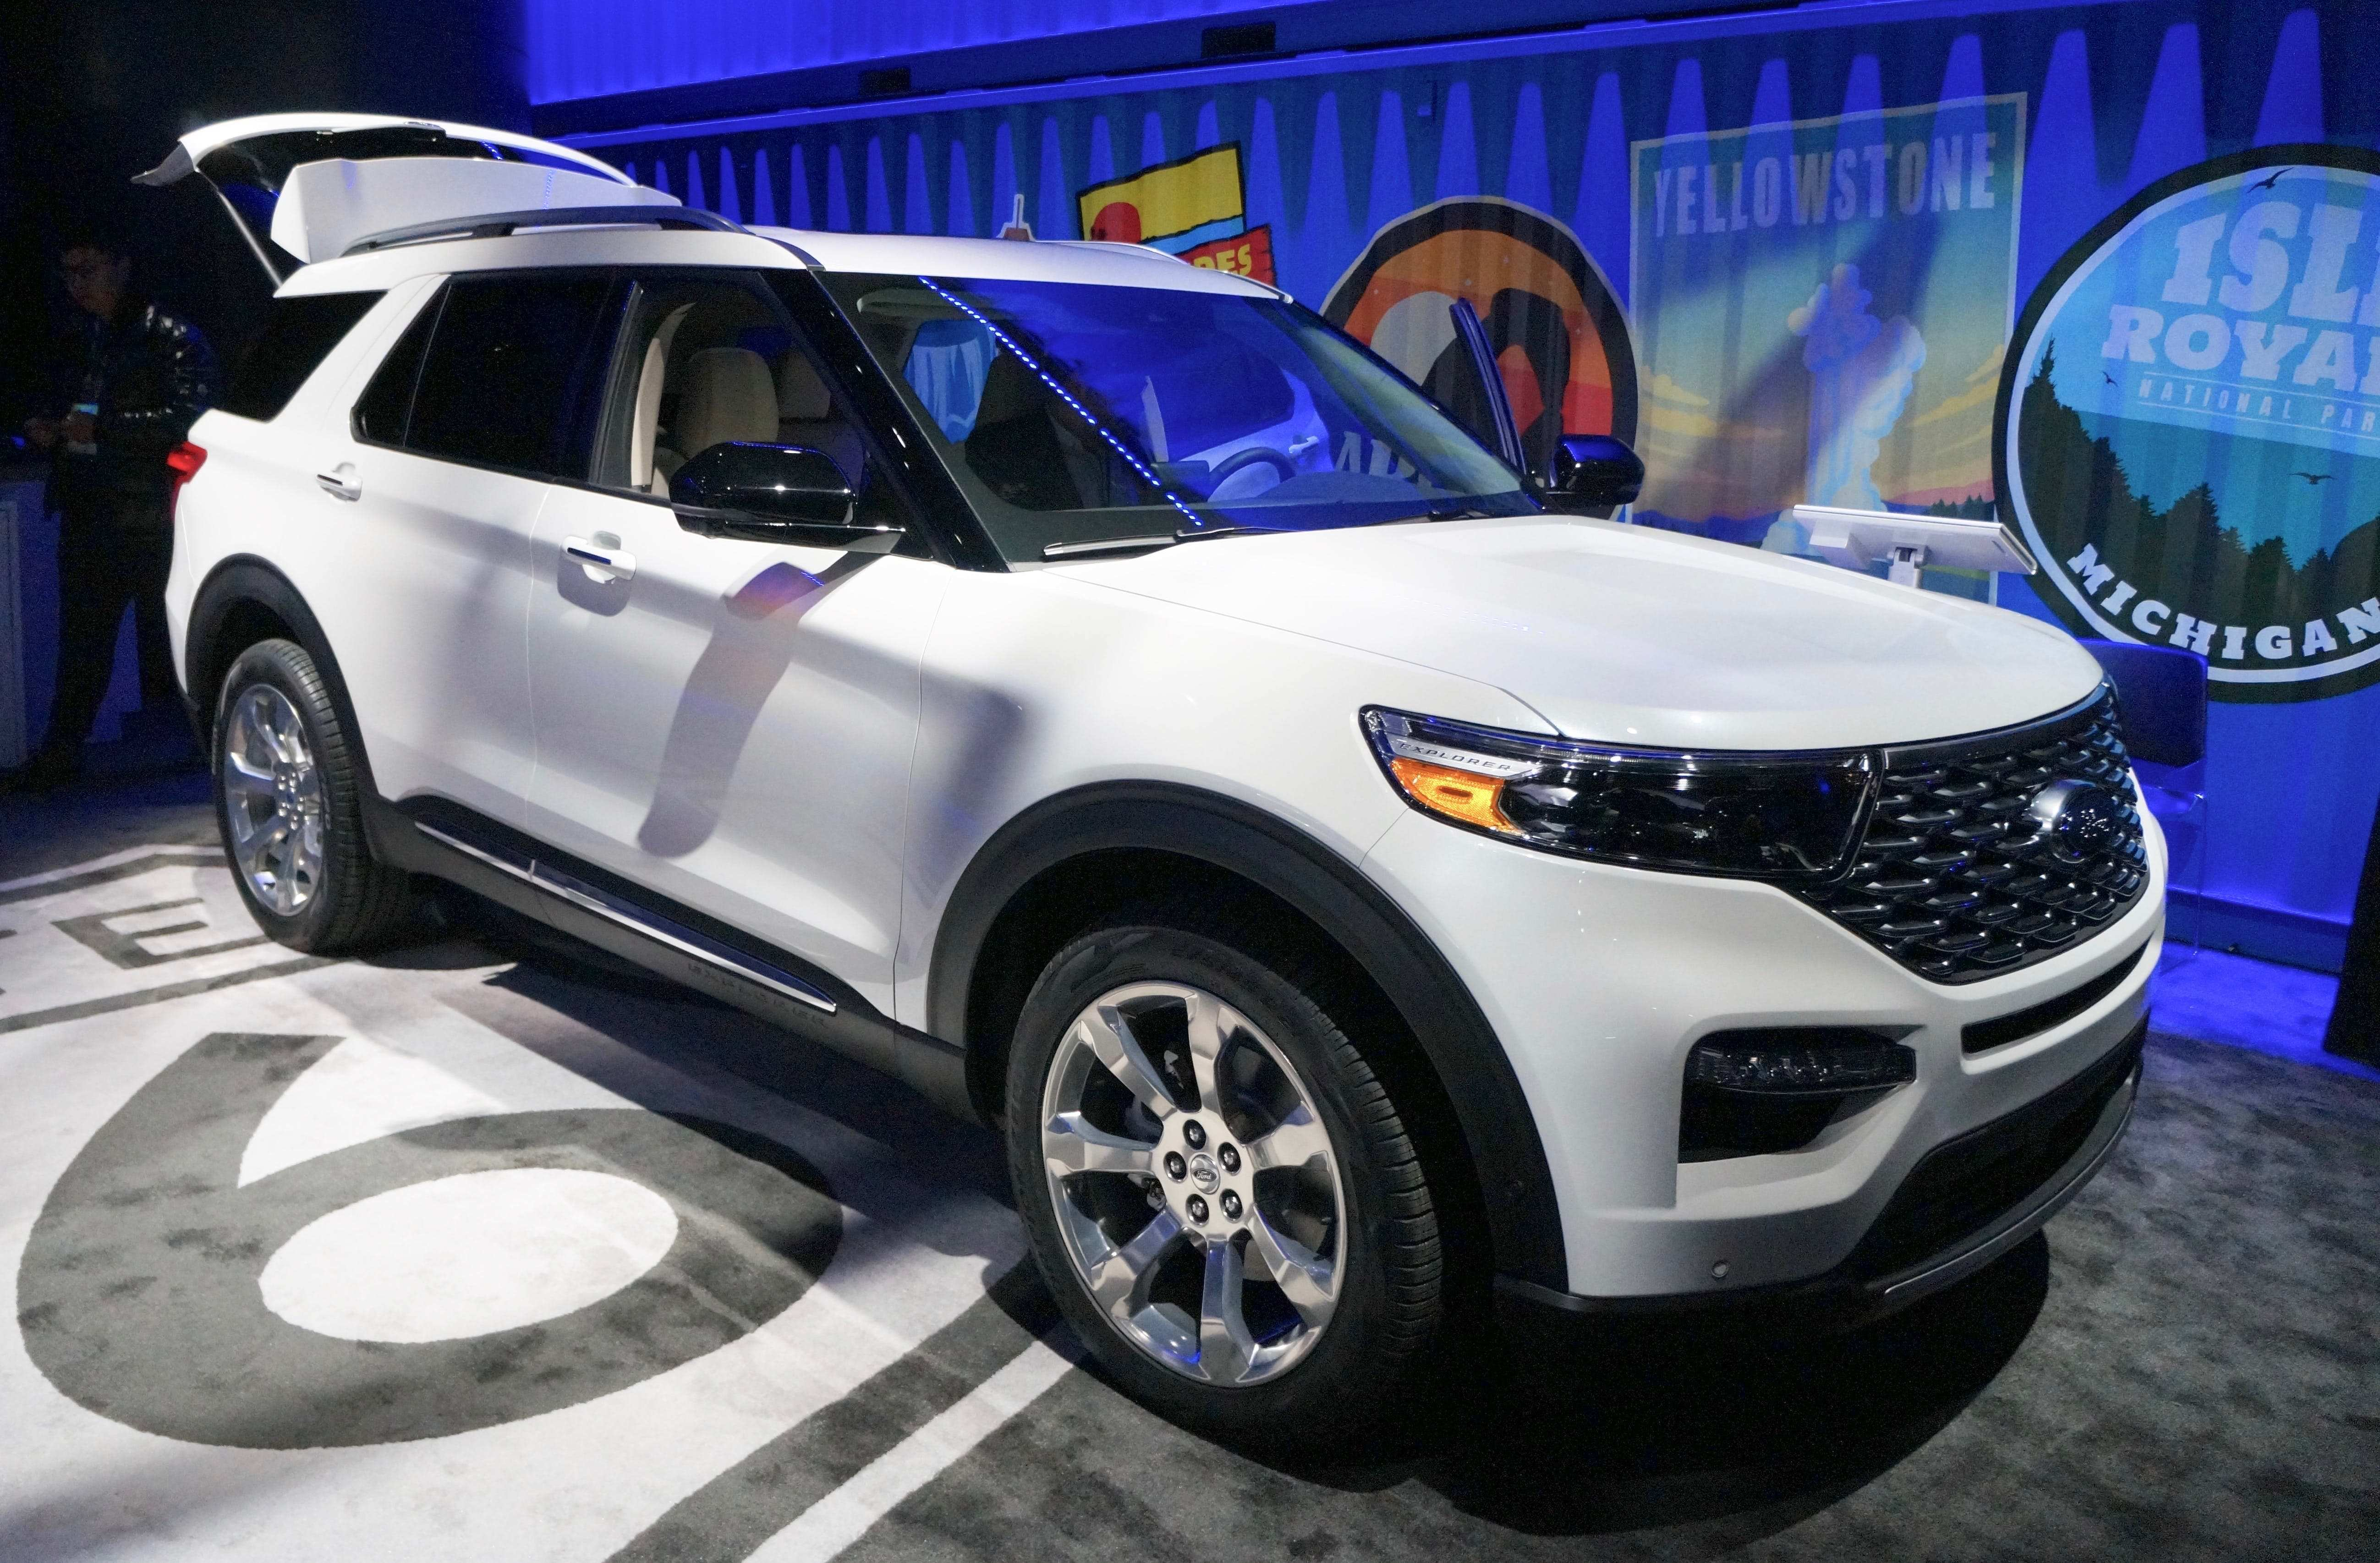 51 New 2020 Ford Explorer Linkedin Price and Review for 2020 Ford Explorer Linkedin